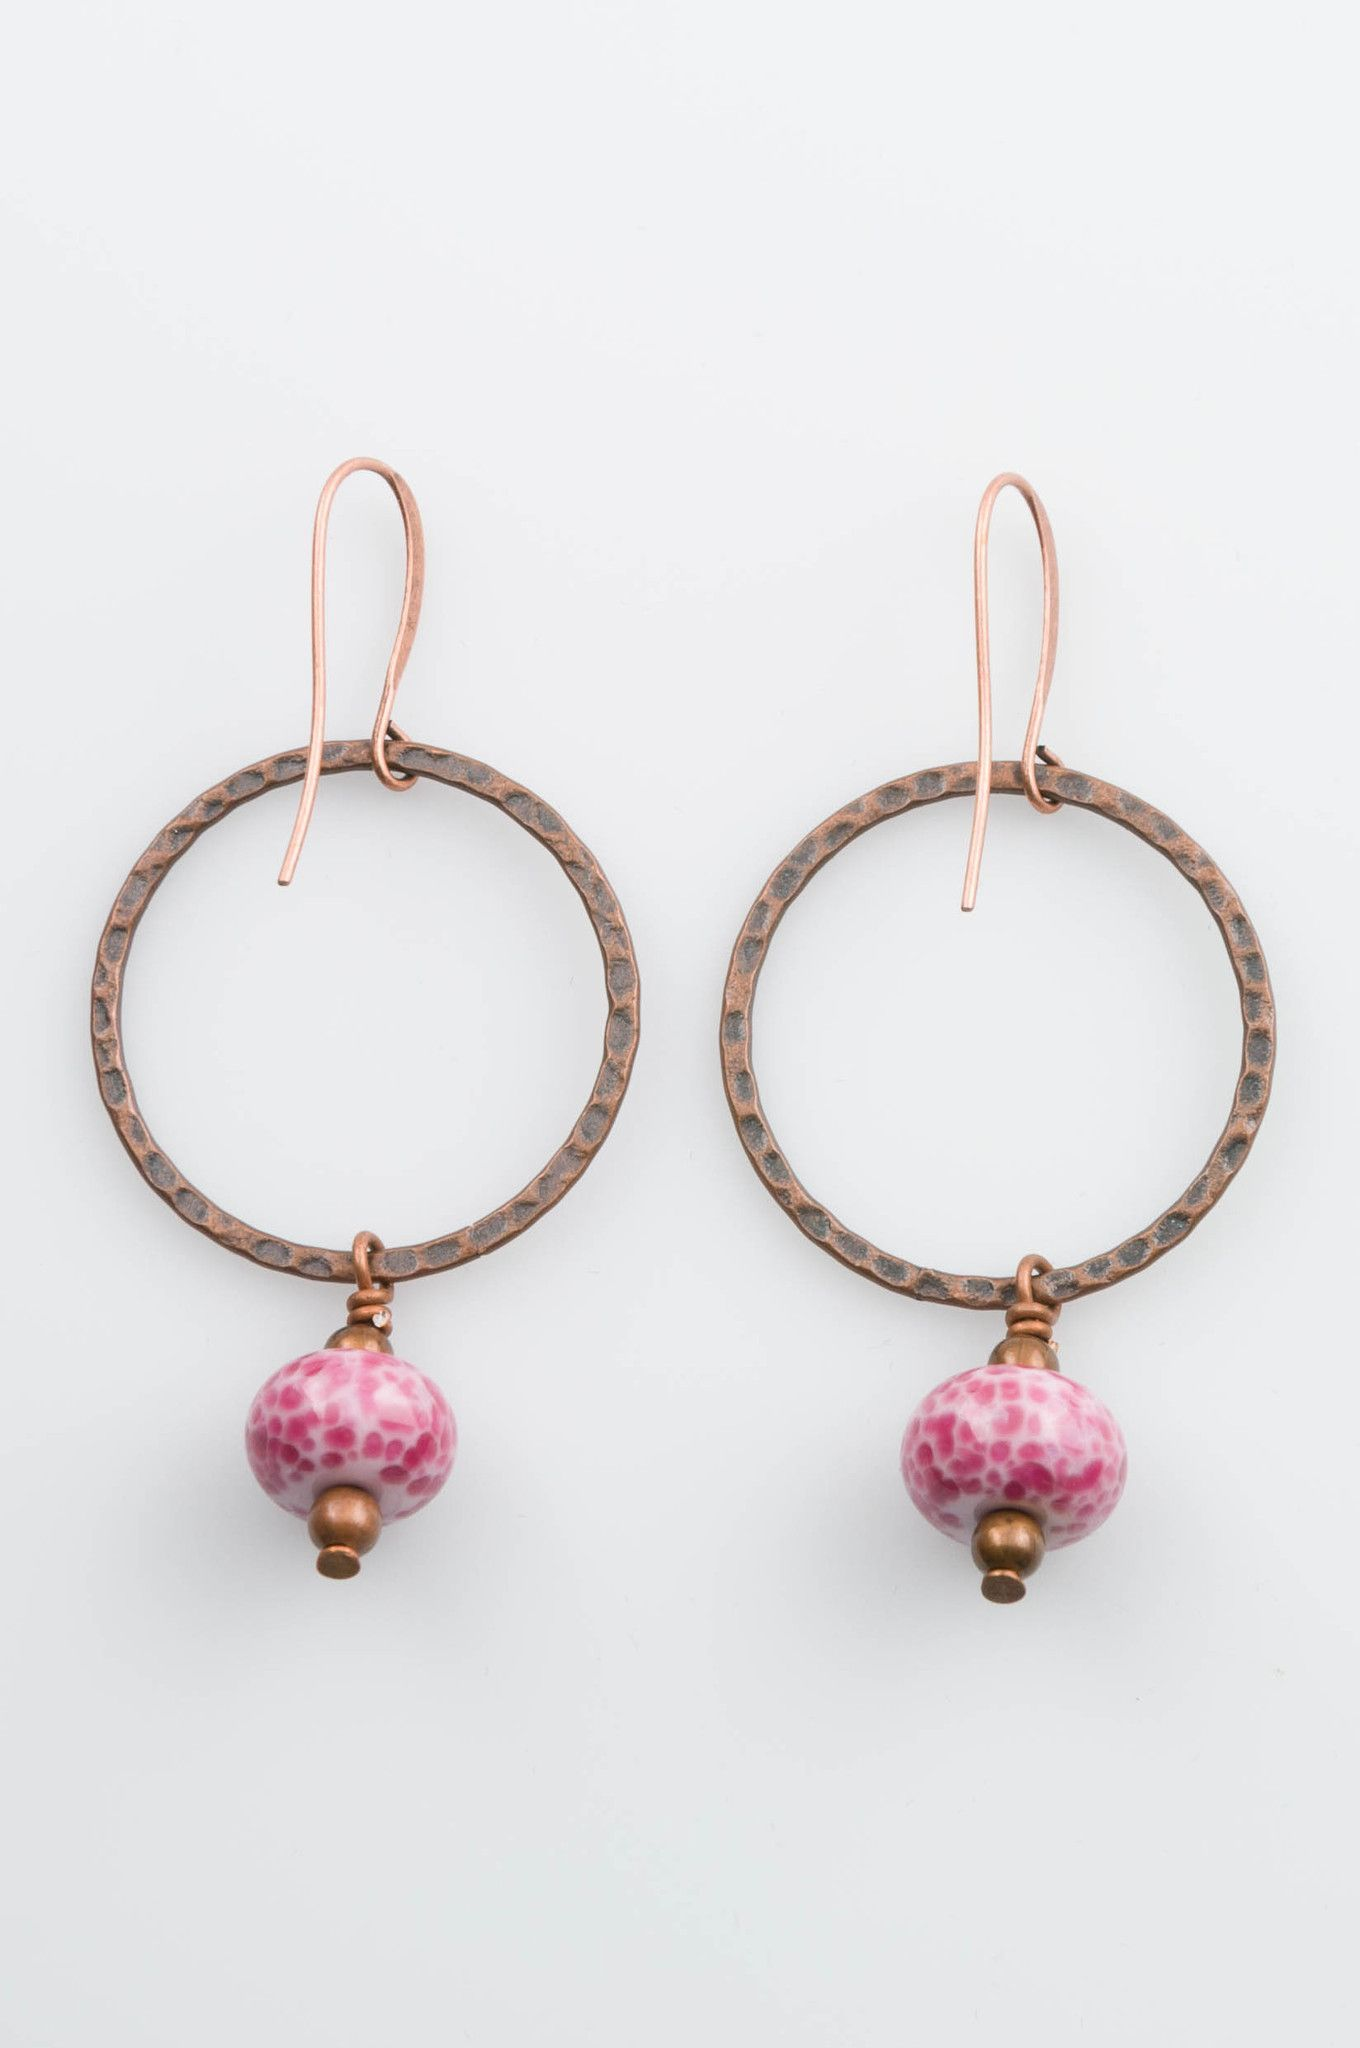 Copper and Pink Glass Hoop Earring   earring patterns   Pinterest ...